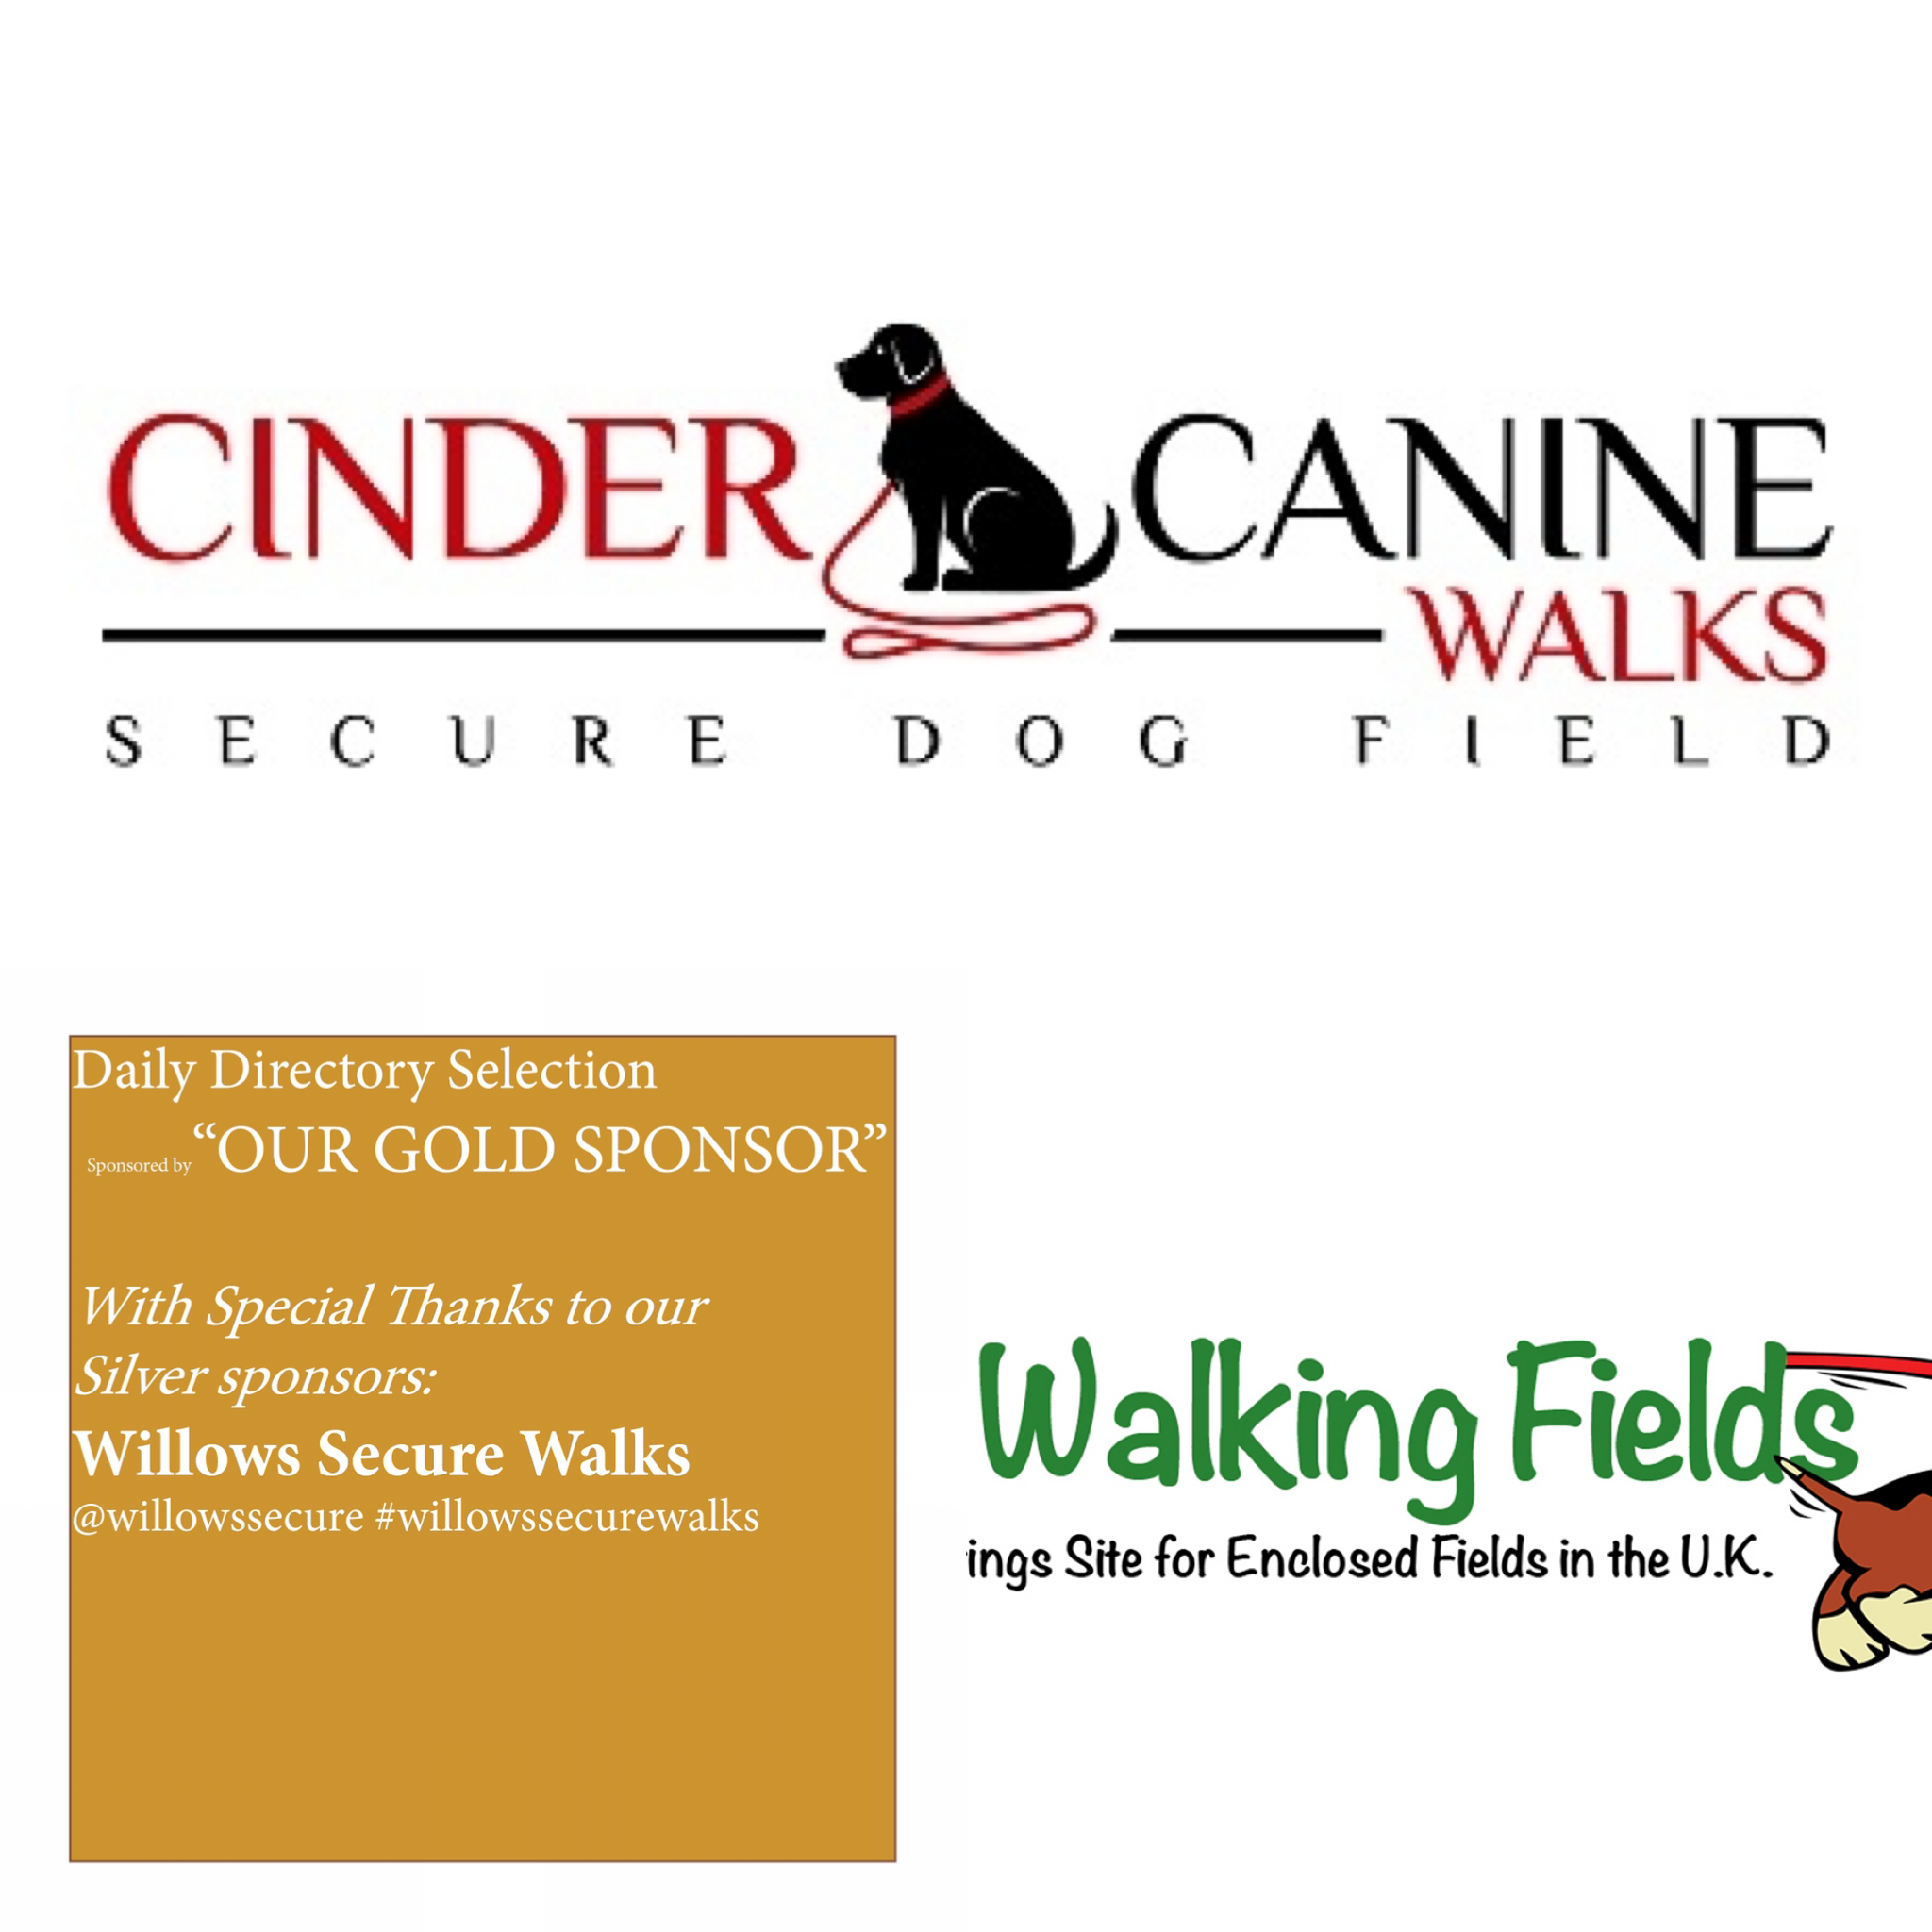 Cinder Canine Walks Fairford Gl7 4ax Http Www Cindercaninewalks Co Uk A Secure Dog Field In Fairford At The End Dog Play Area Dog Walking Dog Exercise